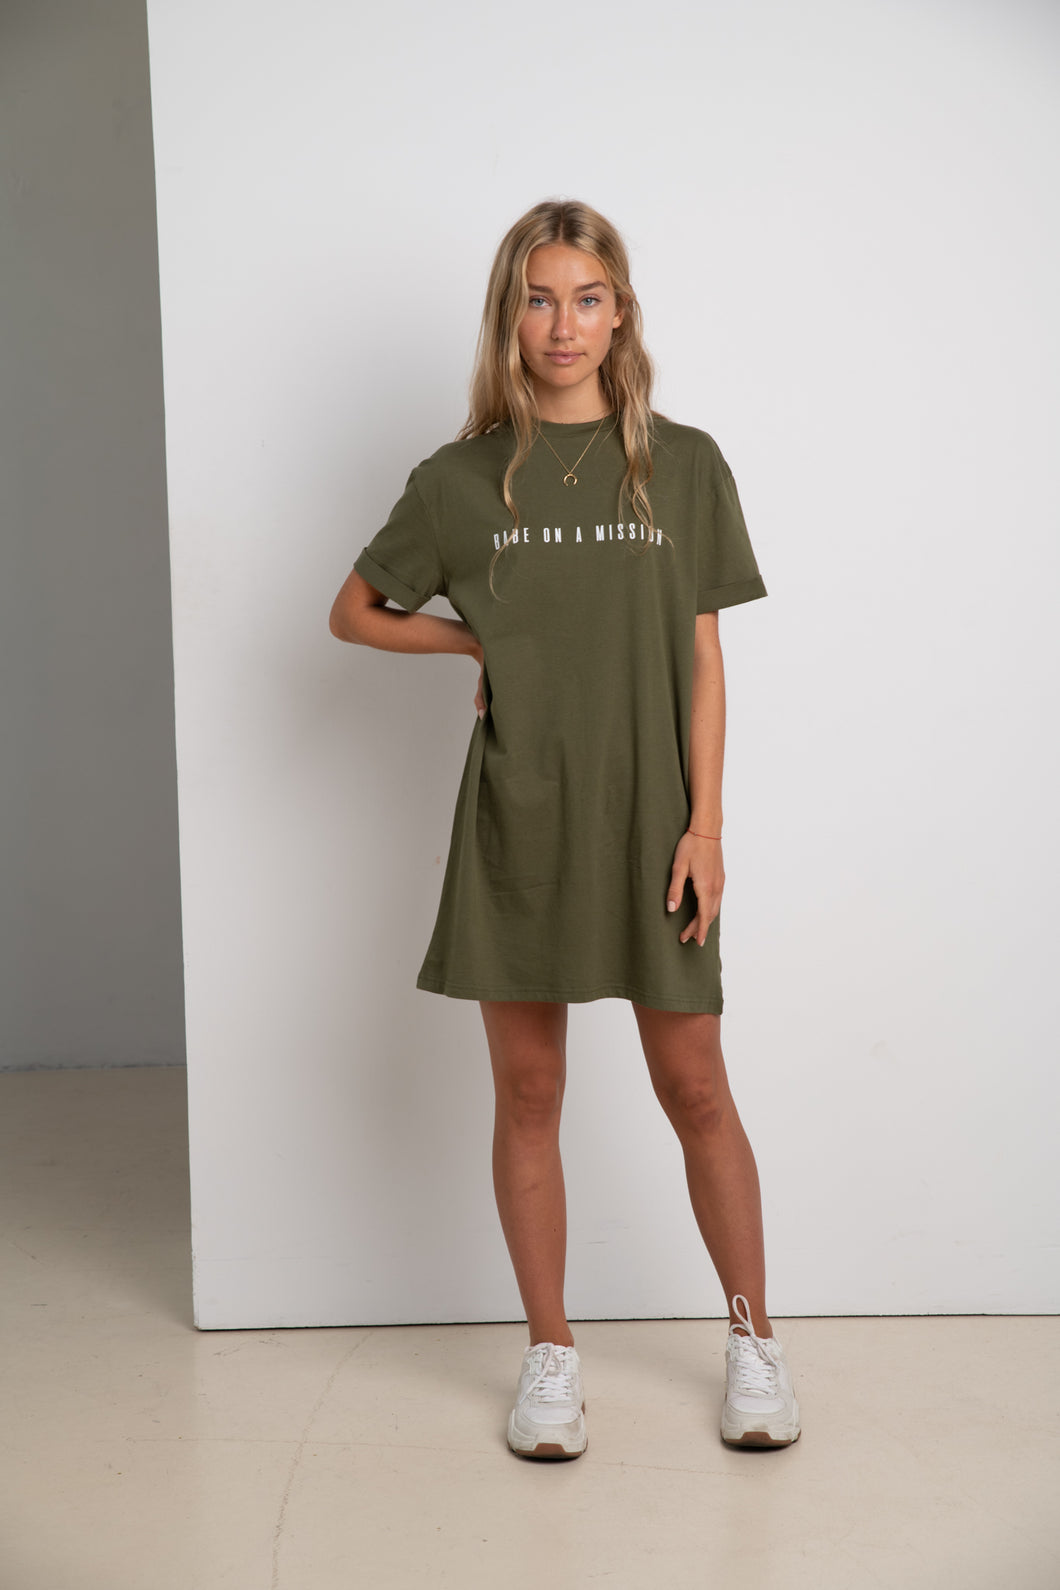 BABE ON A MISSION #ECOFRIENDLY dress in khaki